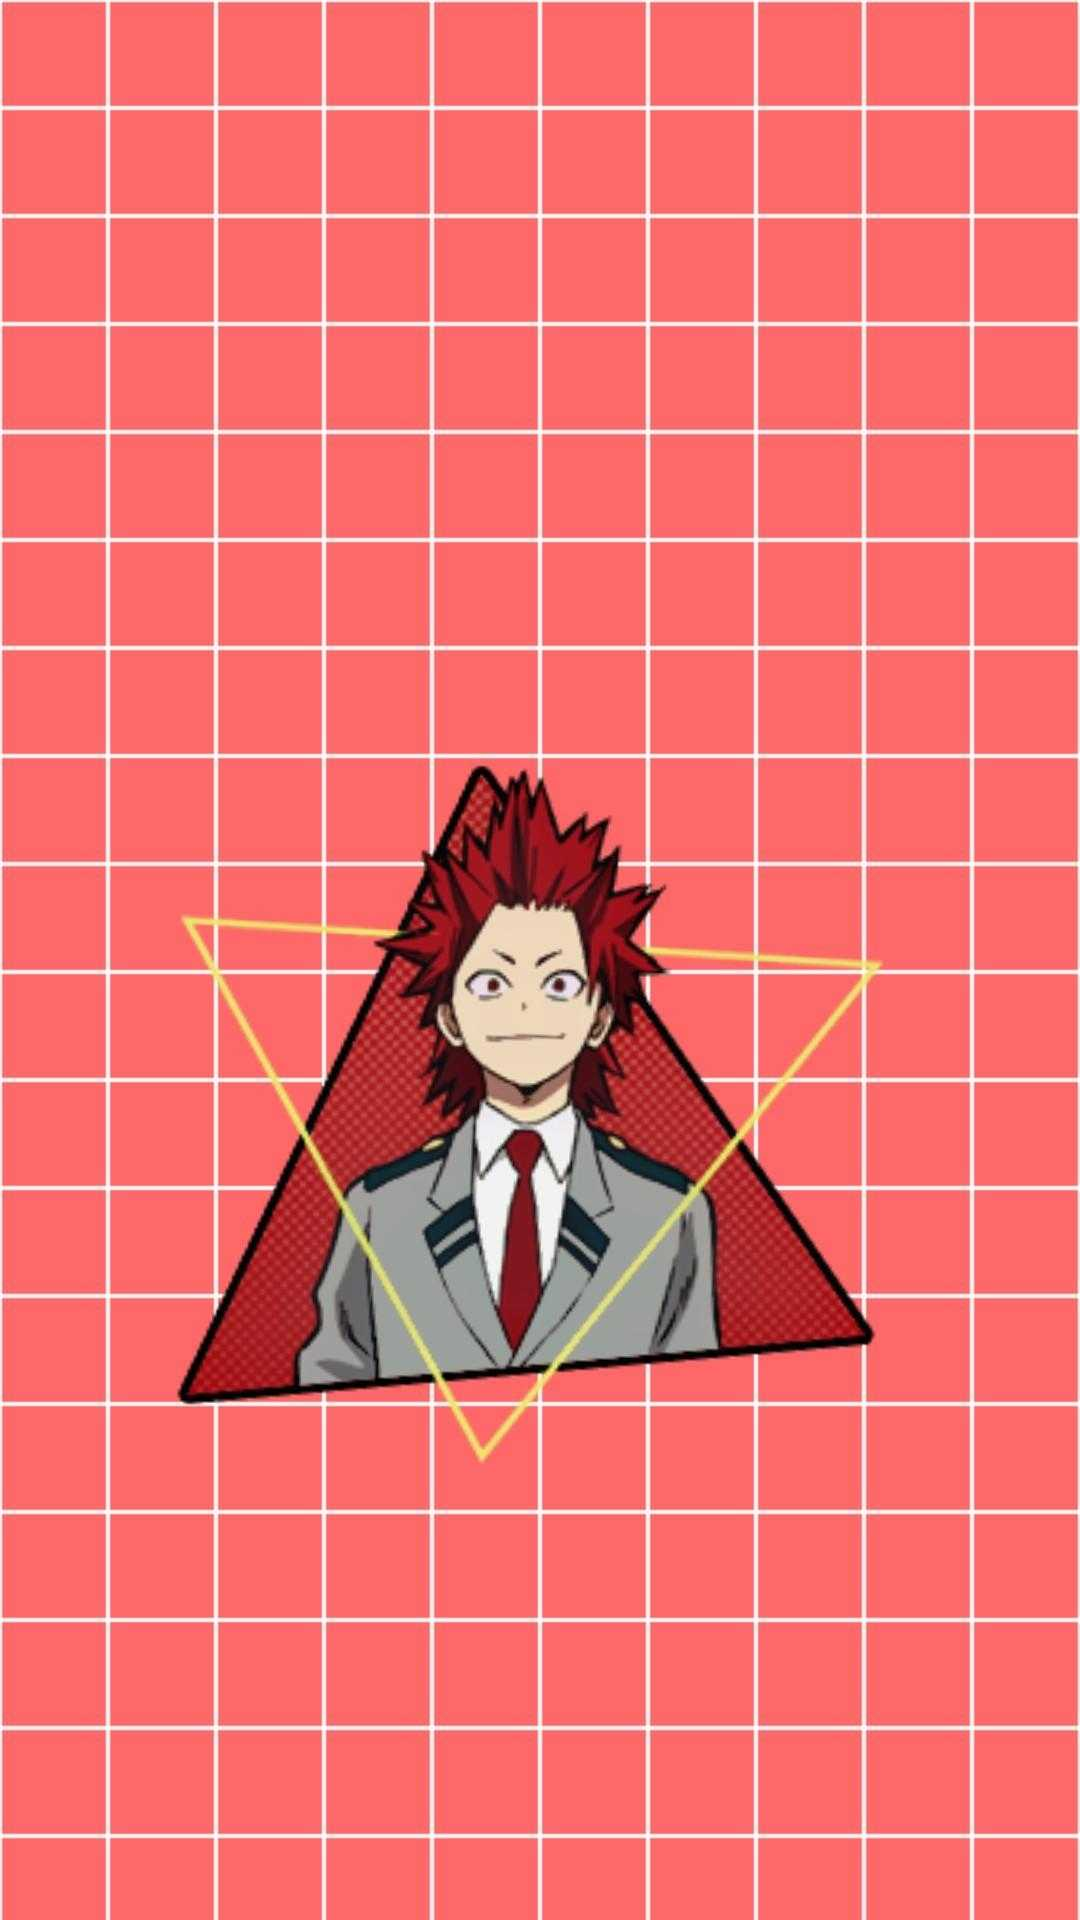 Kirishima Wallpaper 2